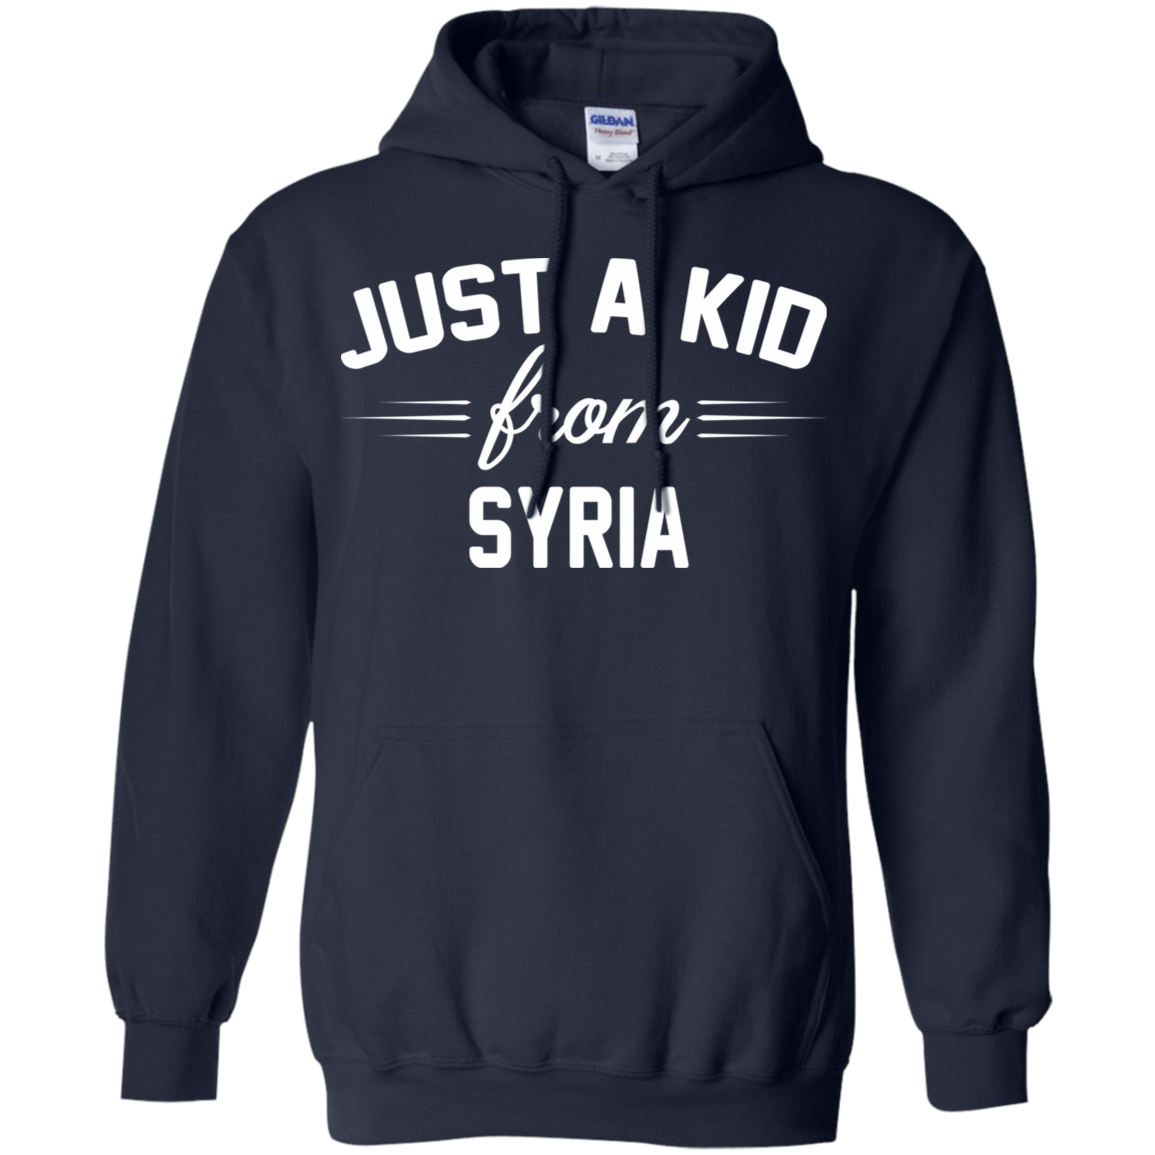 Just a Kid Store | Syria T-Shirts, Hoodie, Tank 541-4742-72090853-23135 - Tee Ript